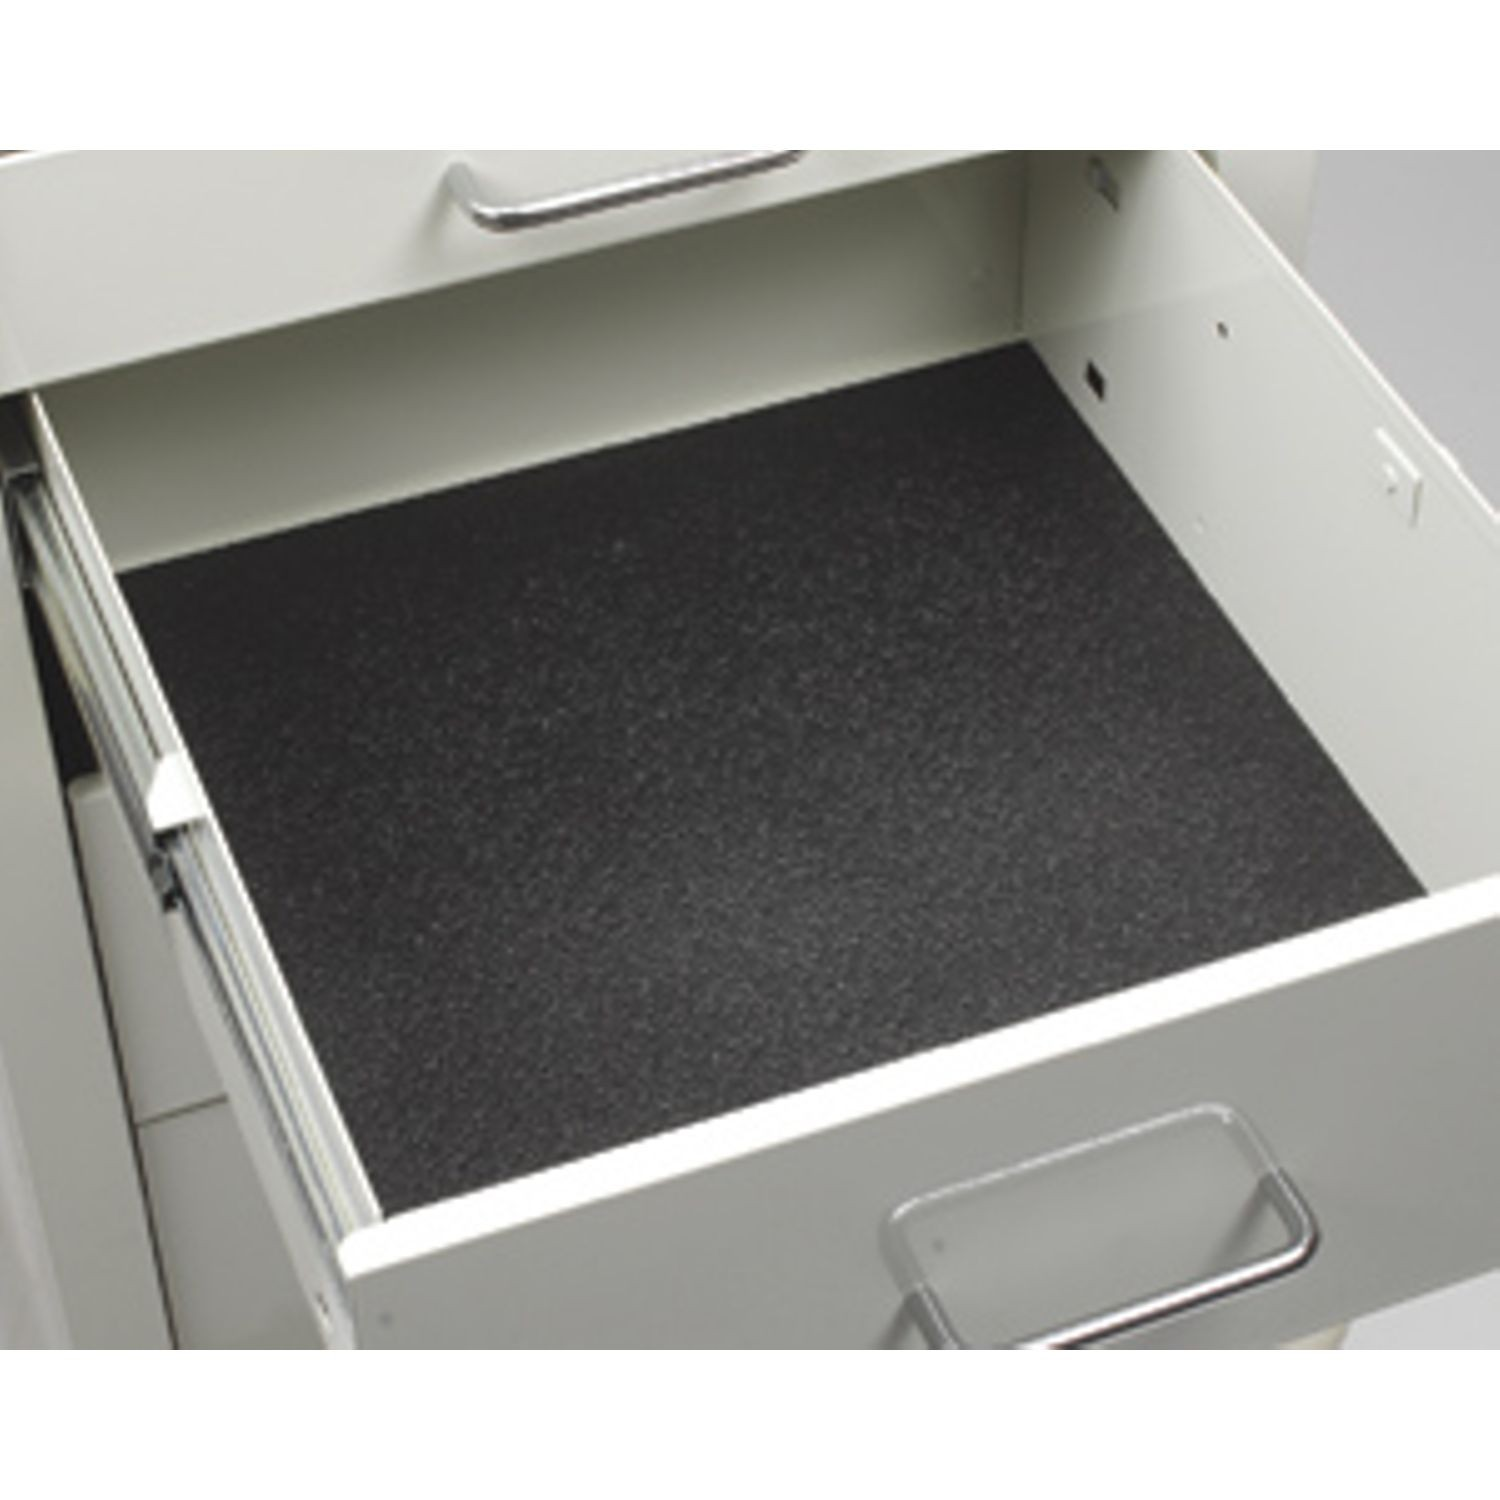 liners feet liner and inch ribbed kitchen asp plastic shelf drawer x